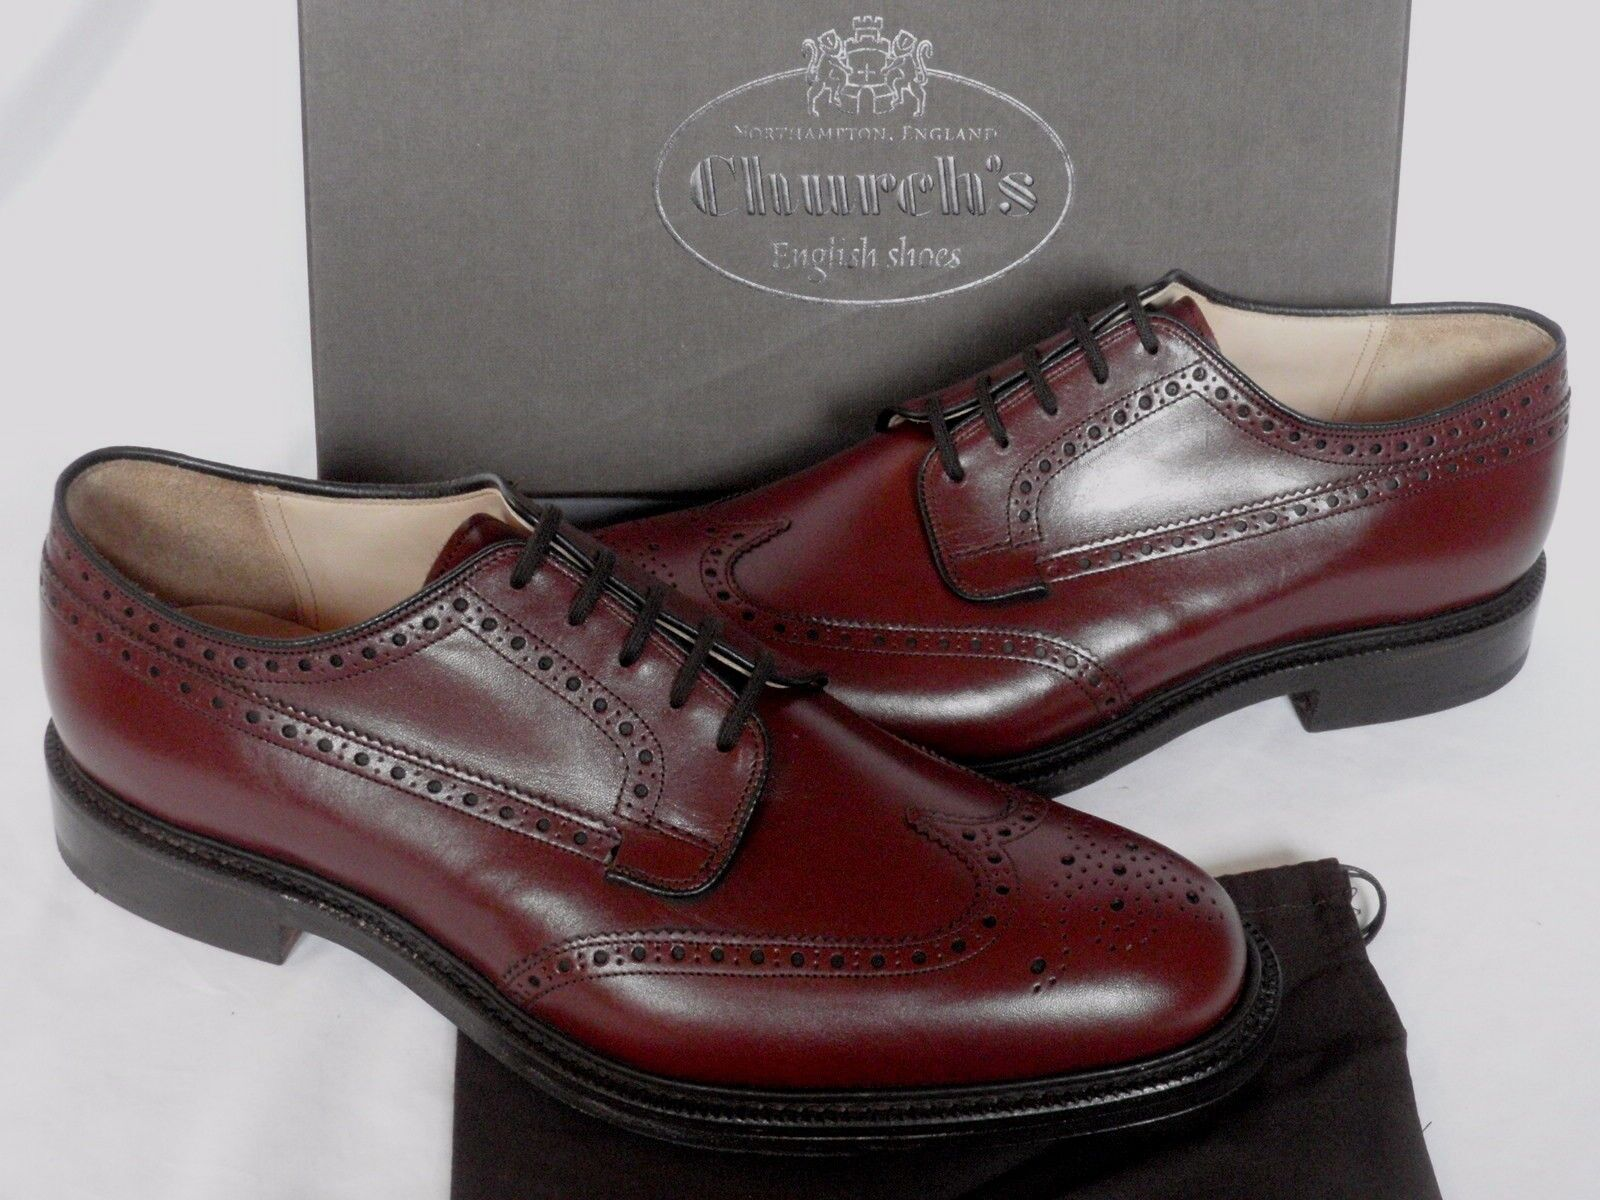 NEW & BOXED Church's en cuir marron  BROOKLAND  Souliers brogues derby chaussures UK 10 G